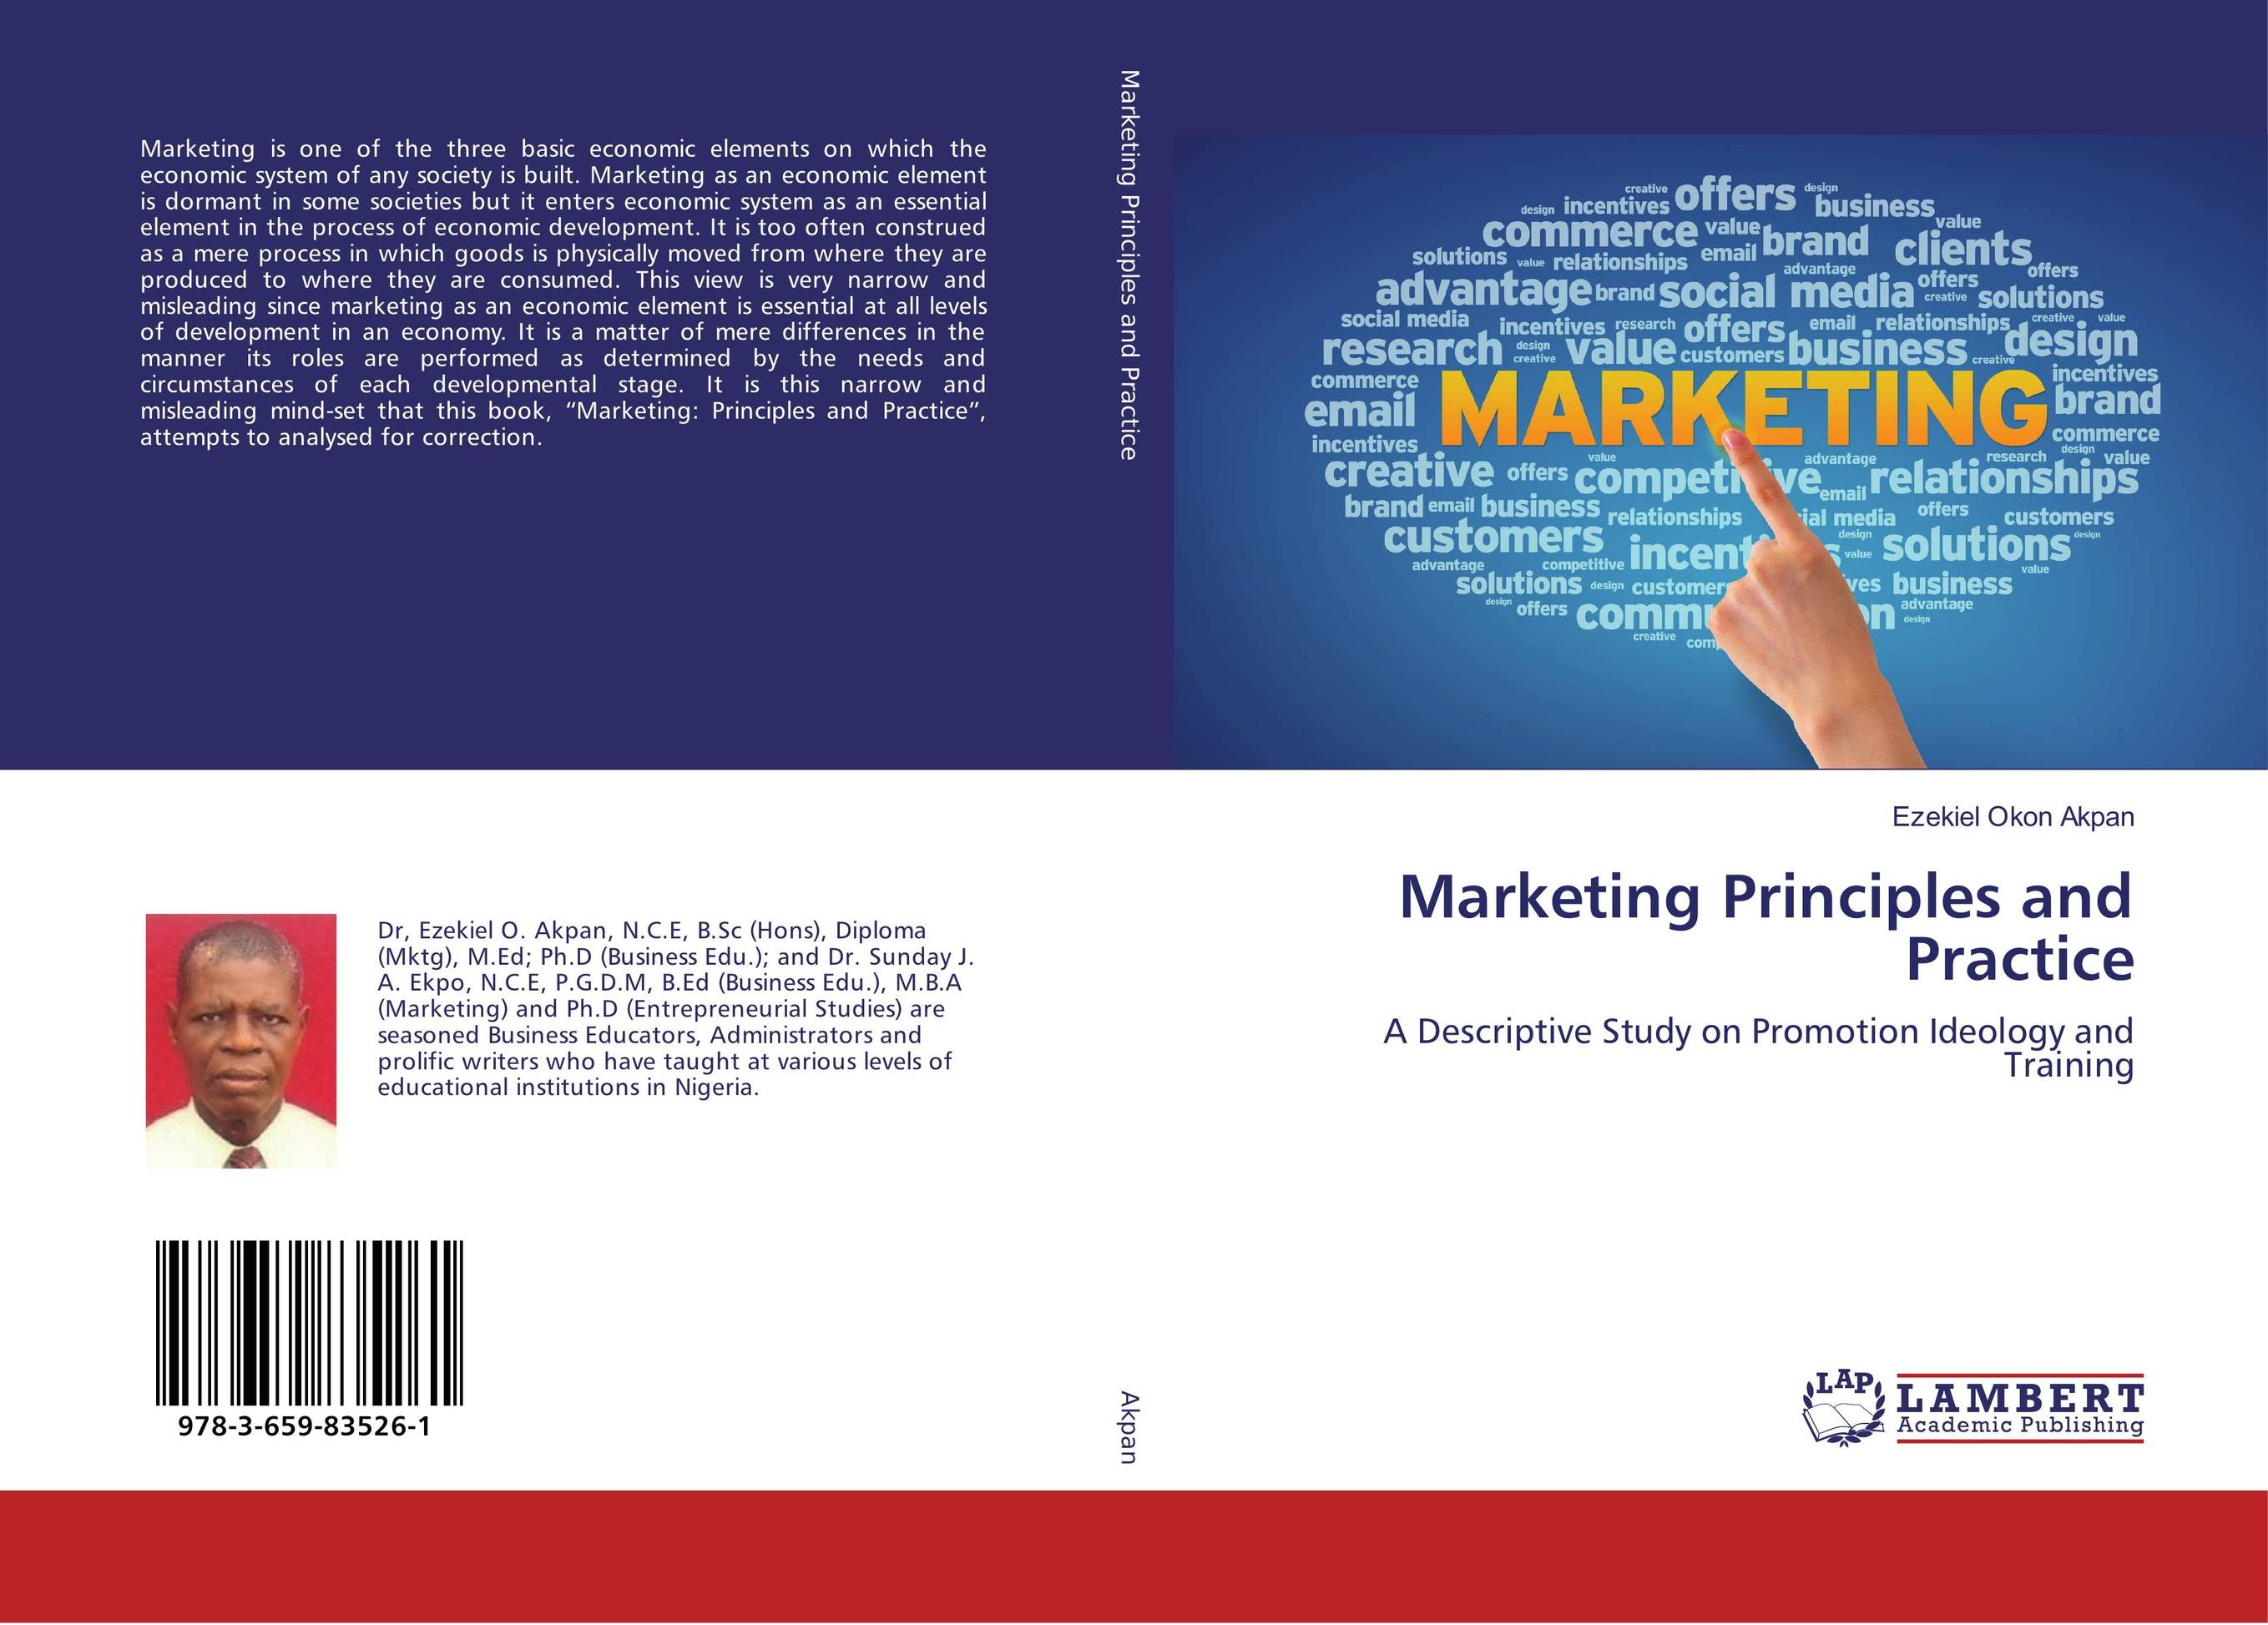 Marketing Principles and Practice principles of international marketing